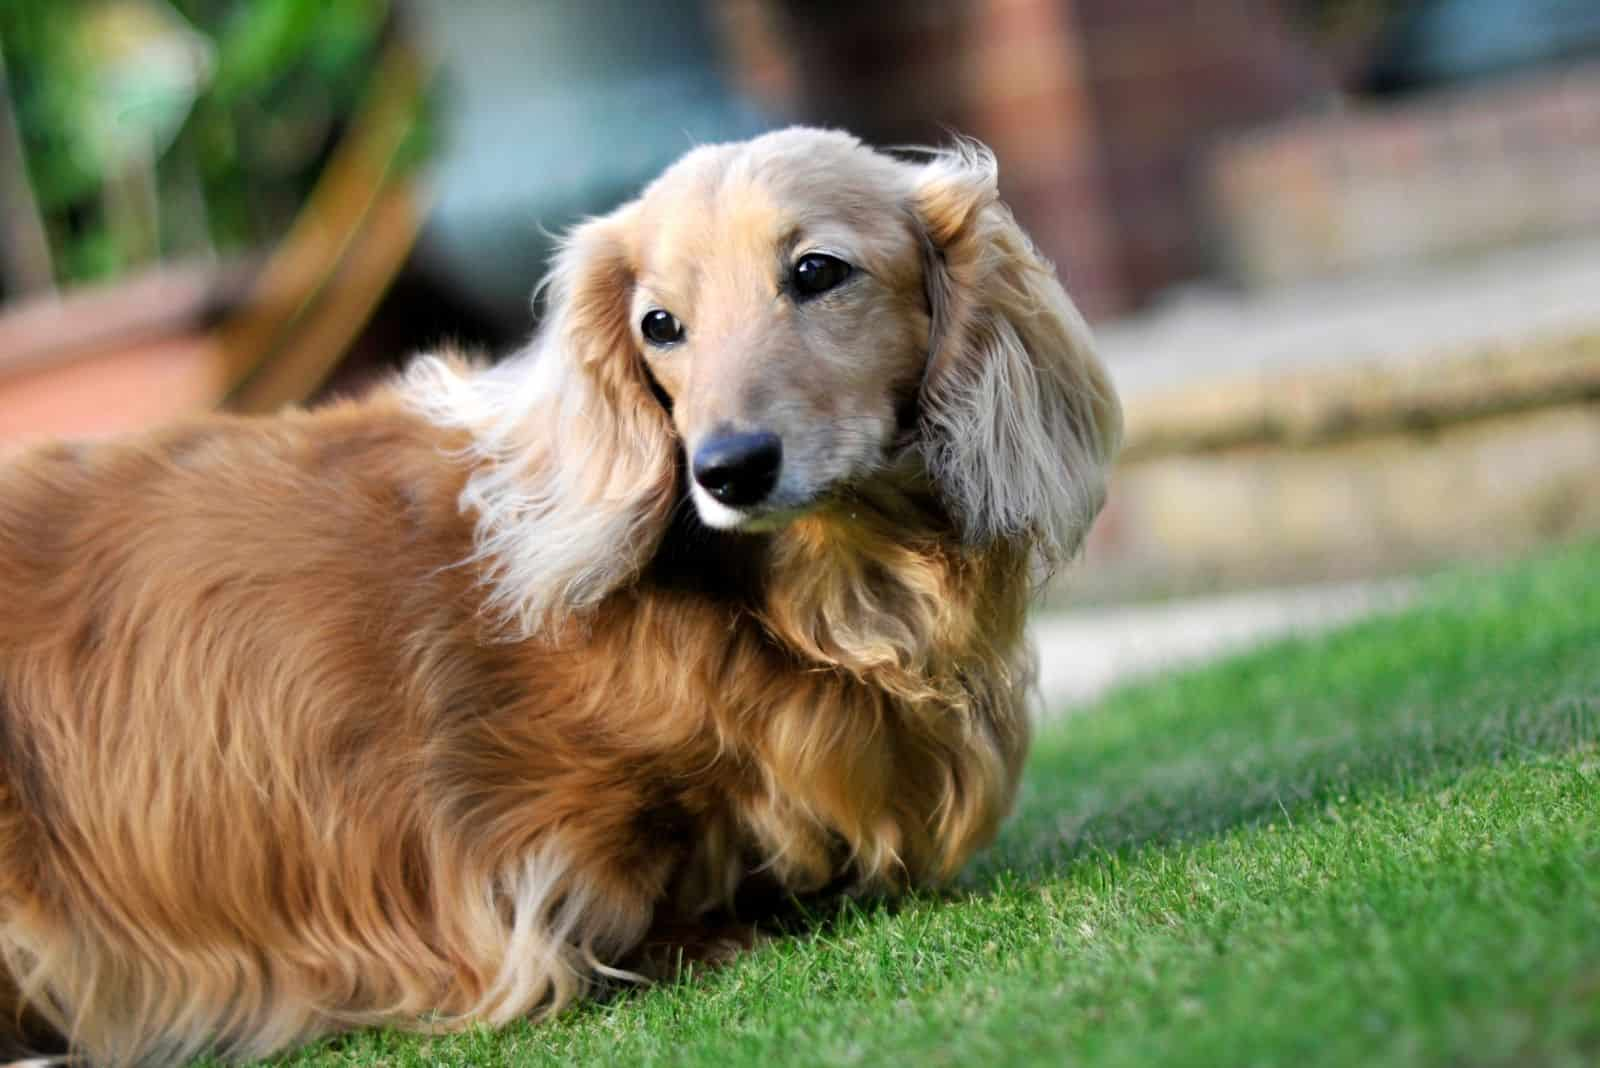 dachshund dog breed standing in the lawn